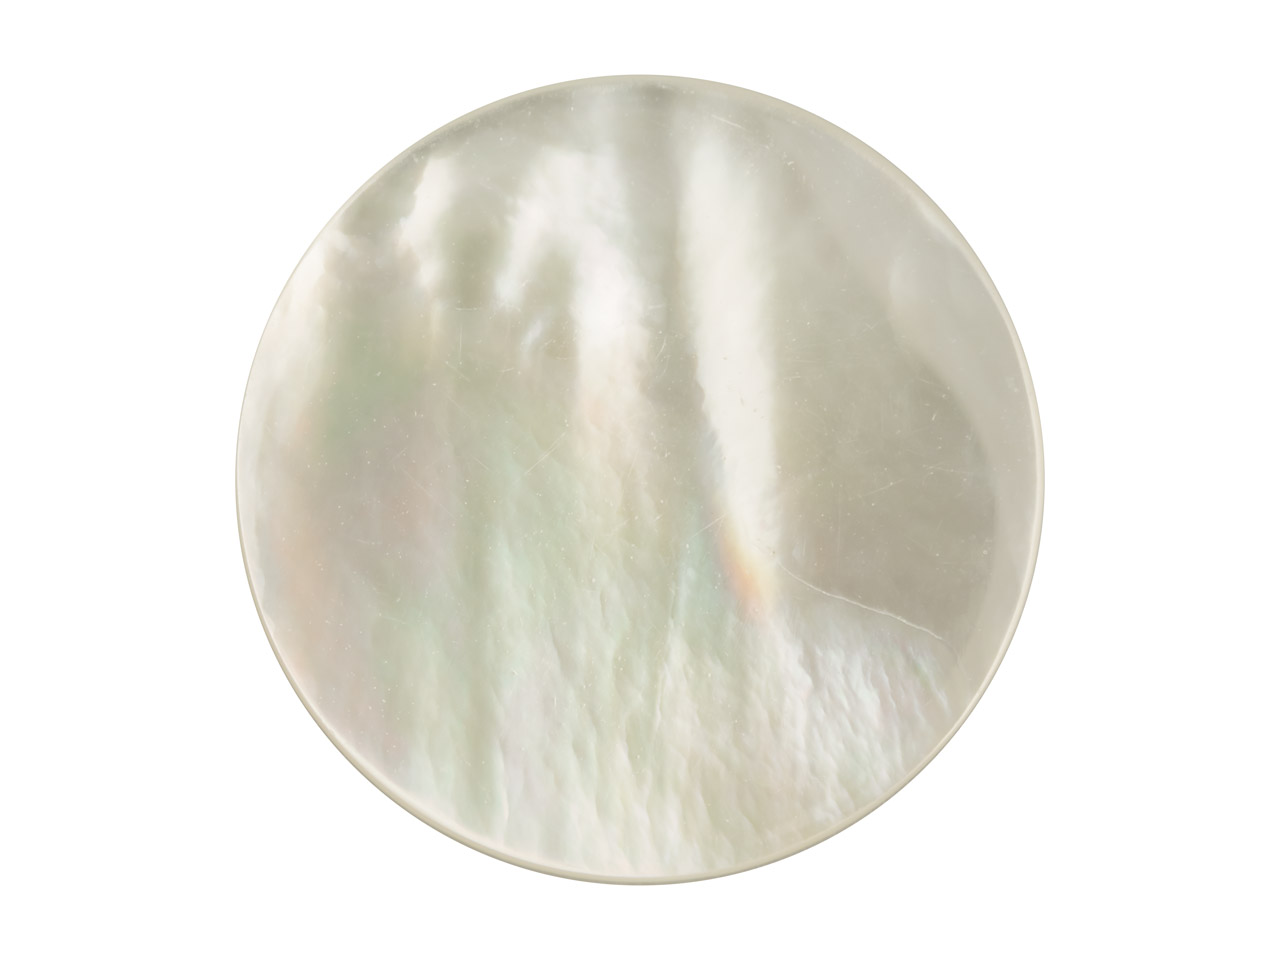 Mother Of Pearl >> White Mother Of Pearl Round Flat Disc 18mm Cooksongold Com